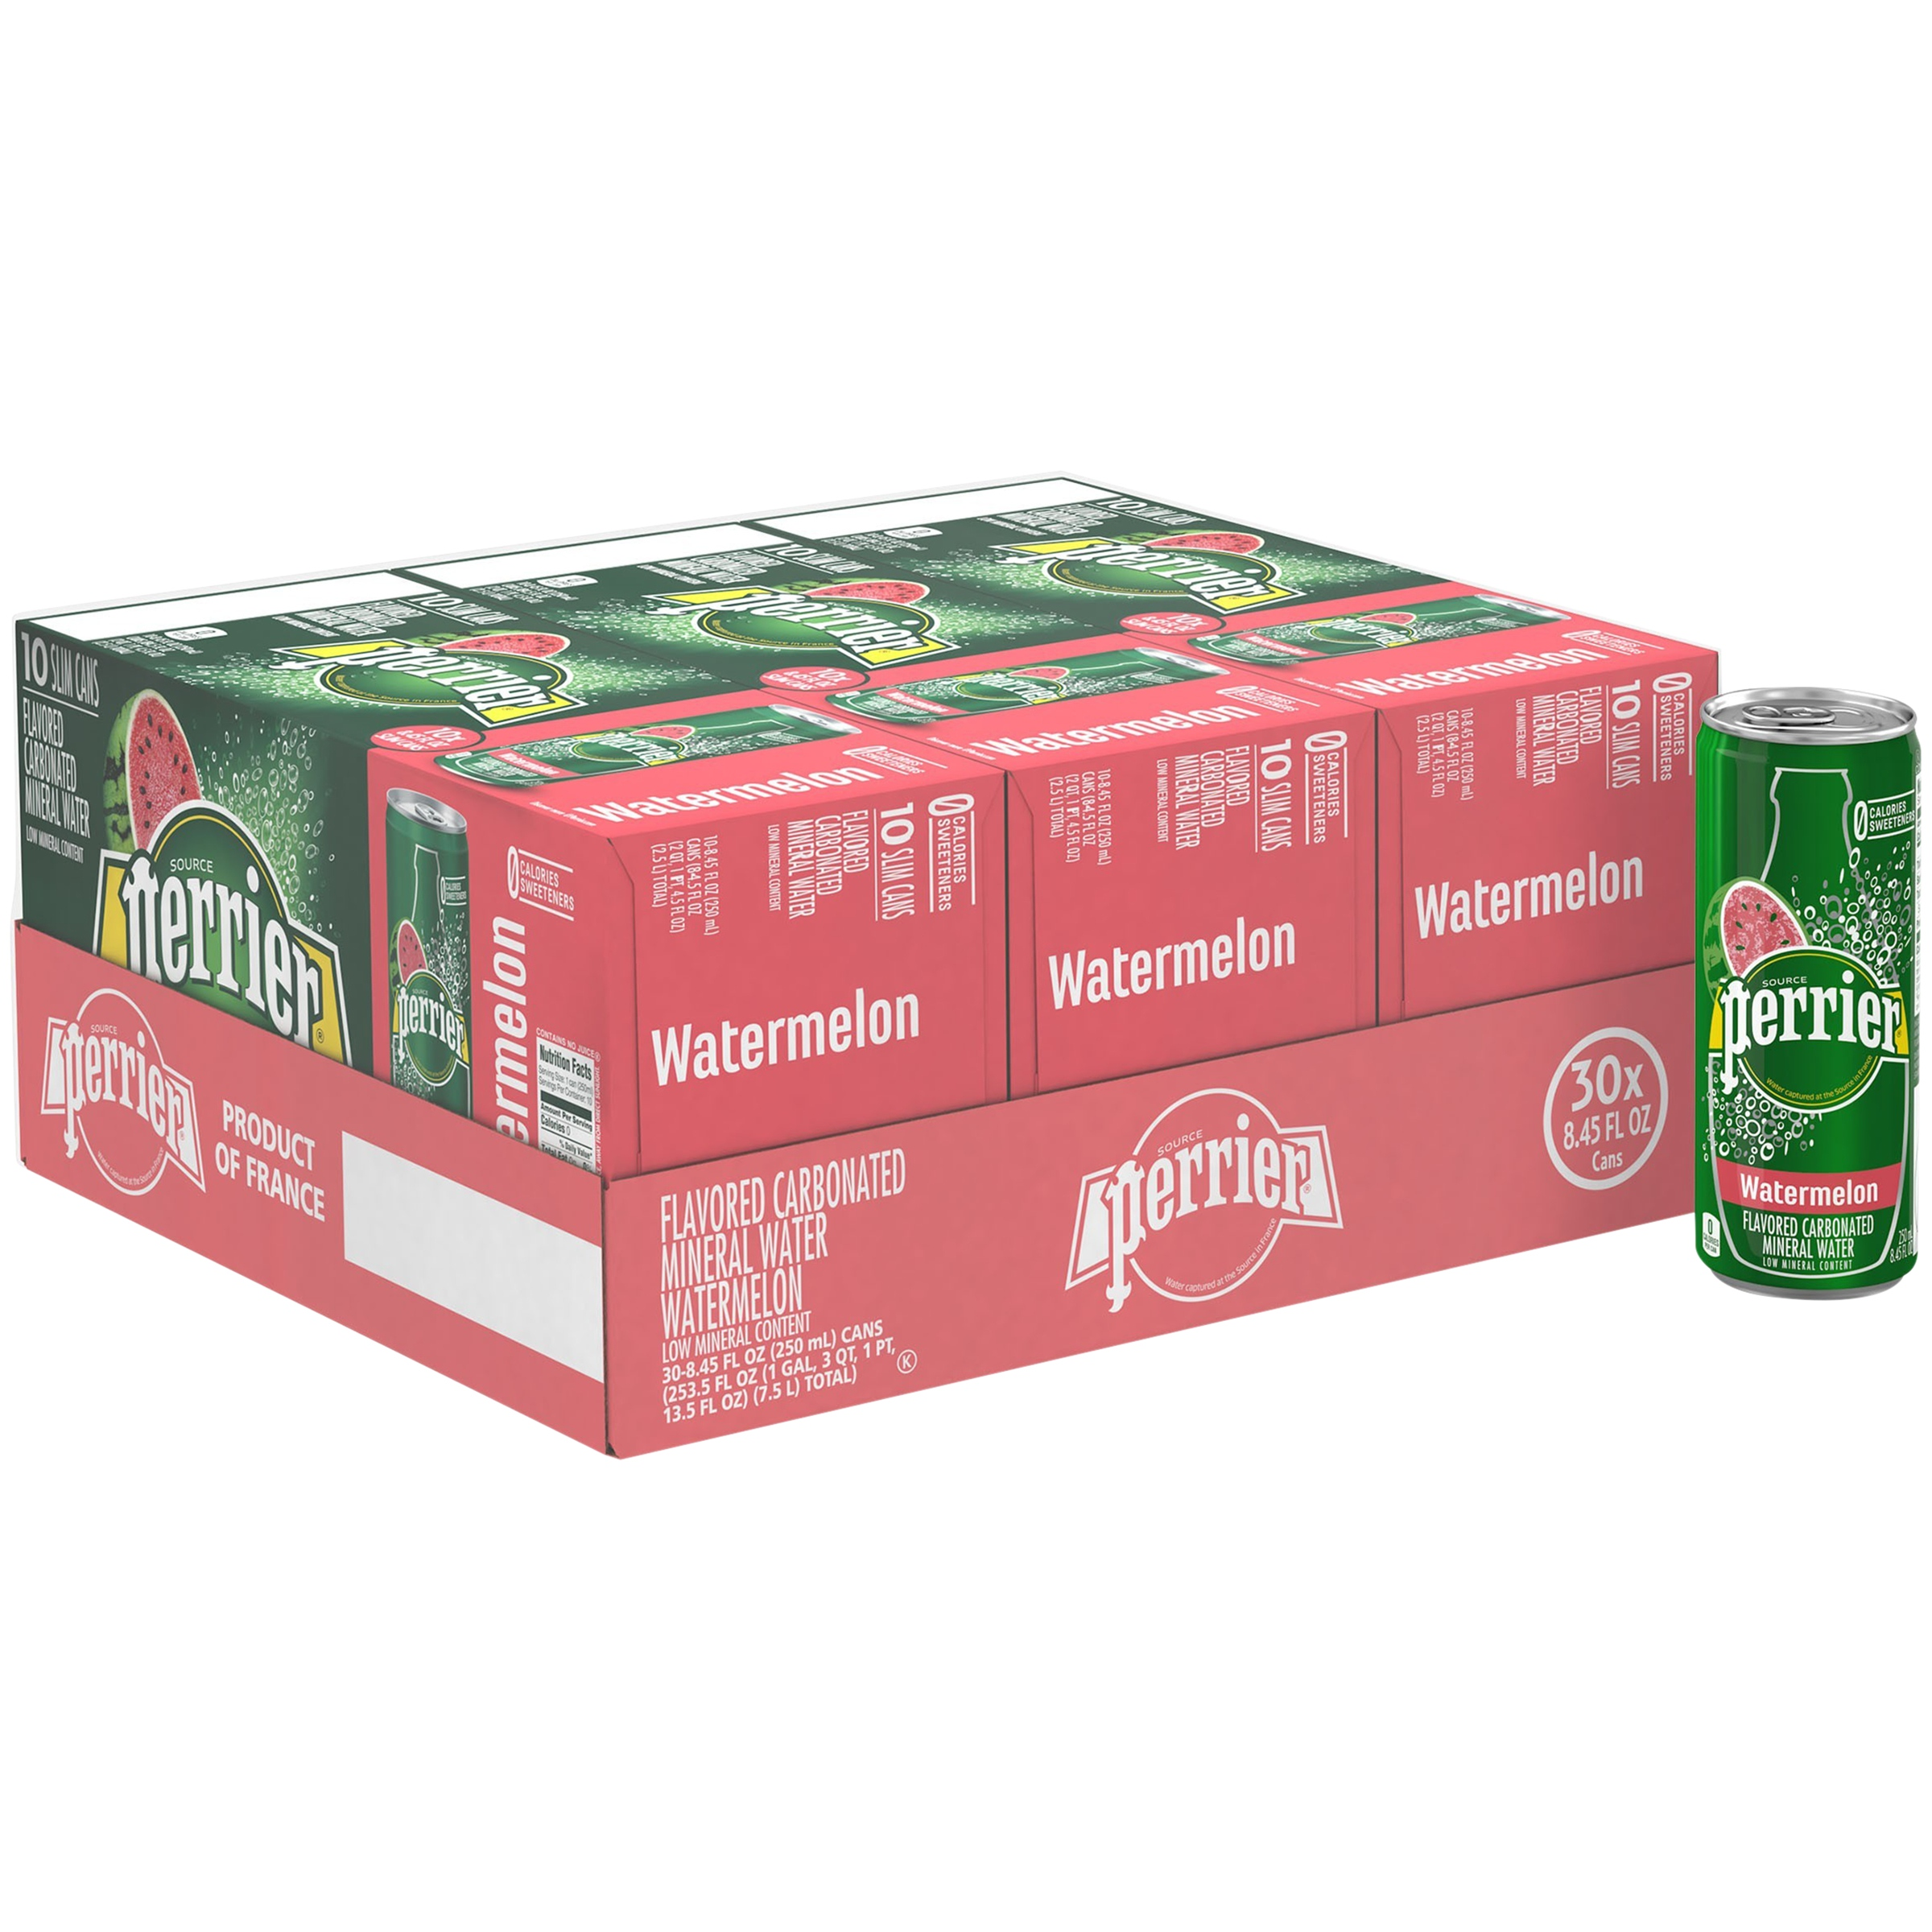 (30 Cans) PERRIER Watermelon Flavored Carbonated Mineral Water, 8.45 Fl Oz